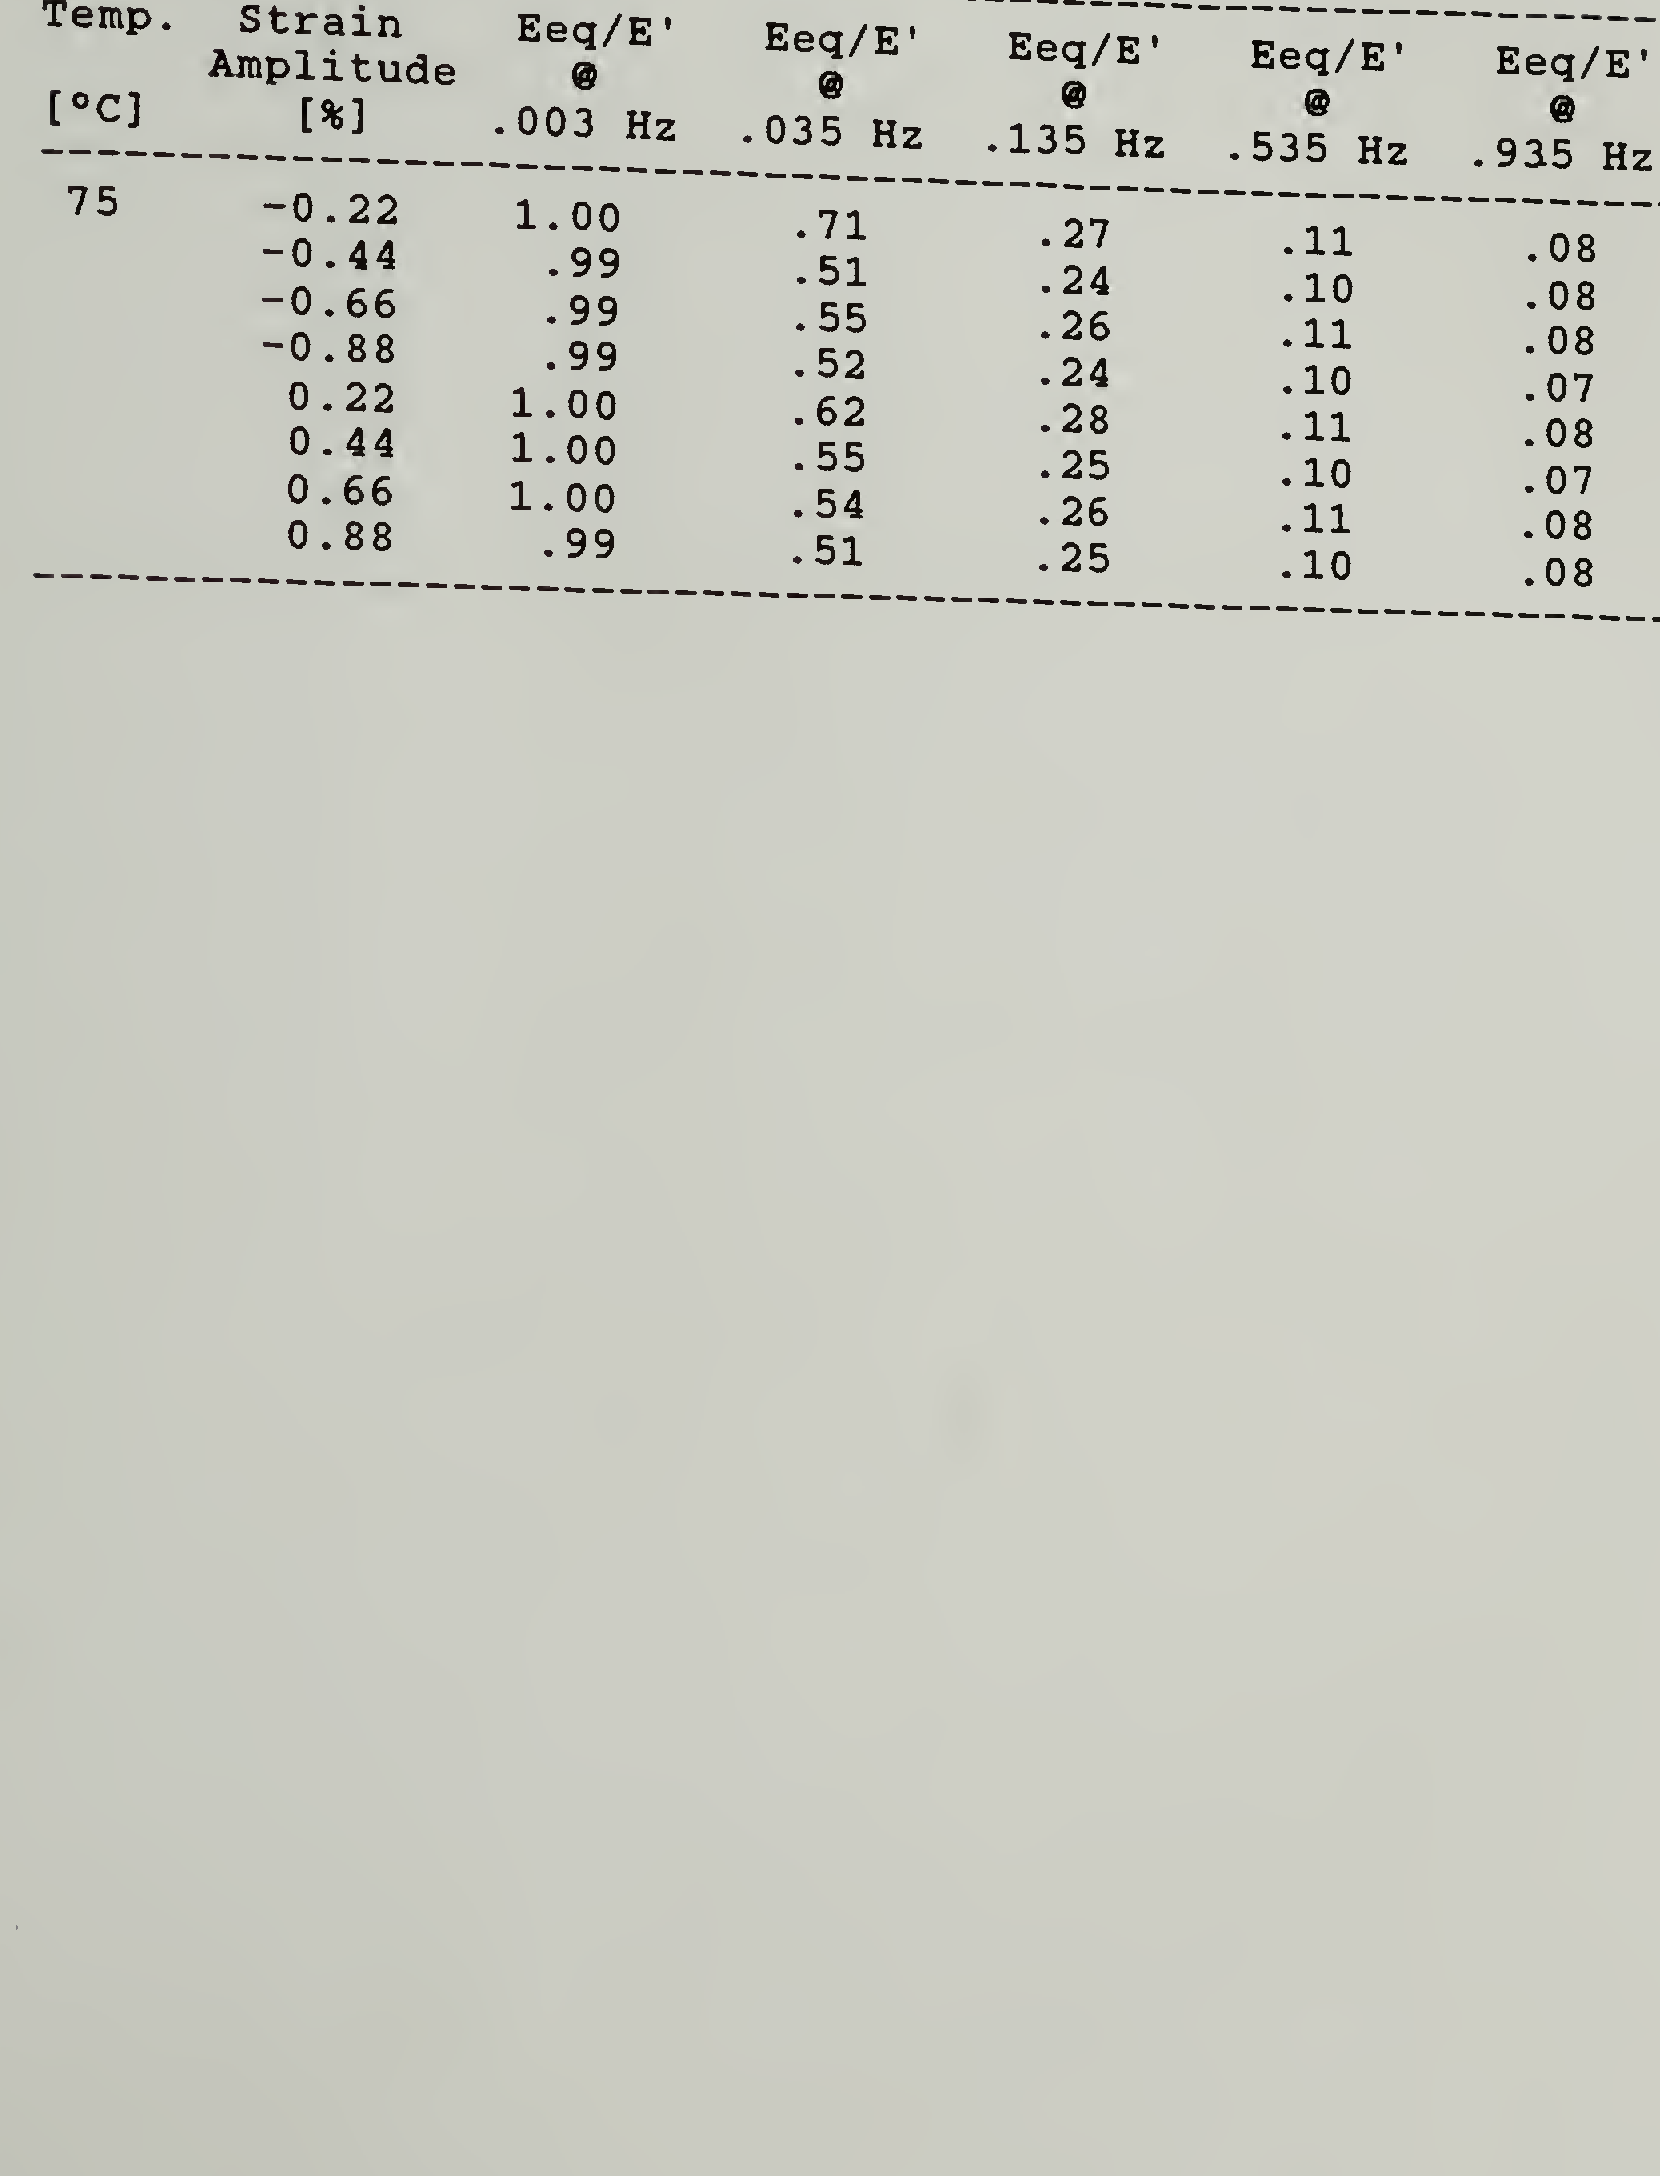 table 5.4